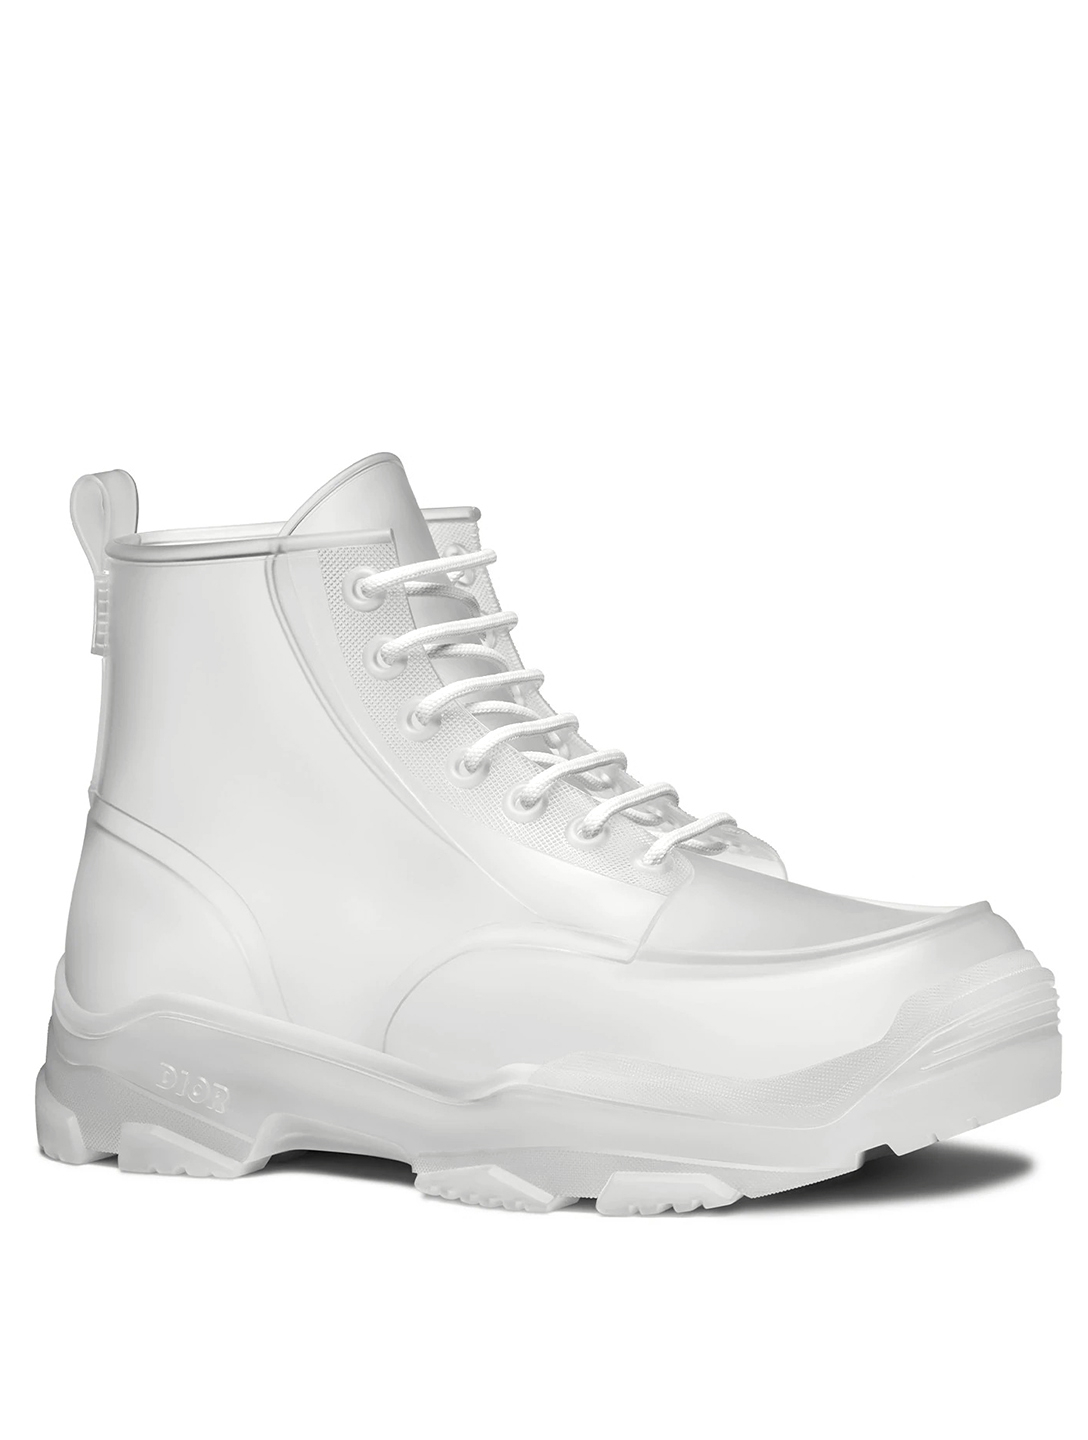 DIOR Transparent High-Top Rubber Boots Men's Neutral